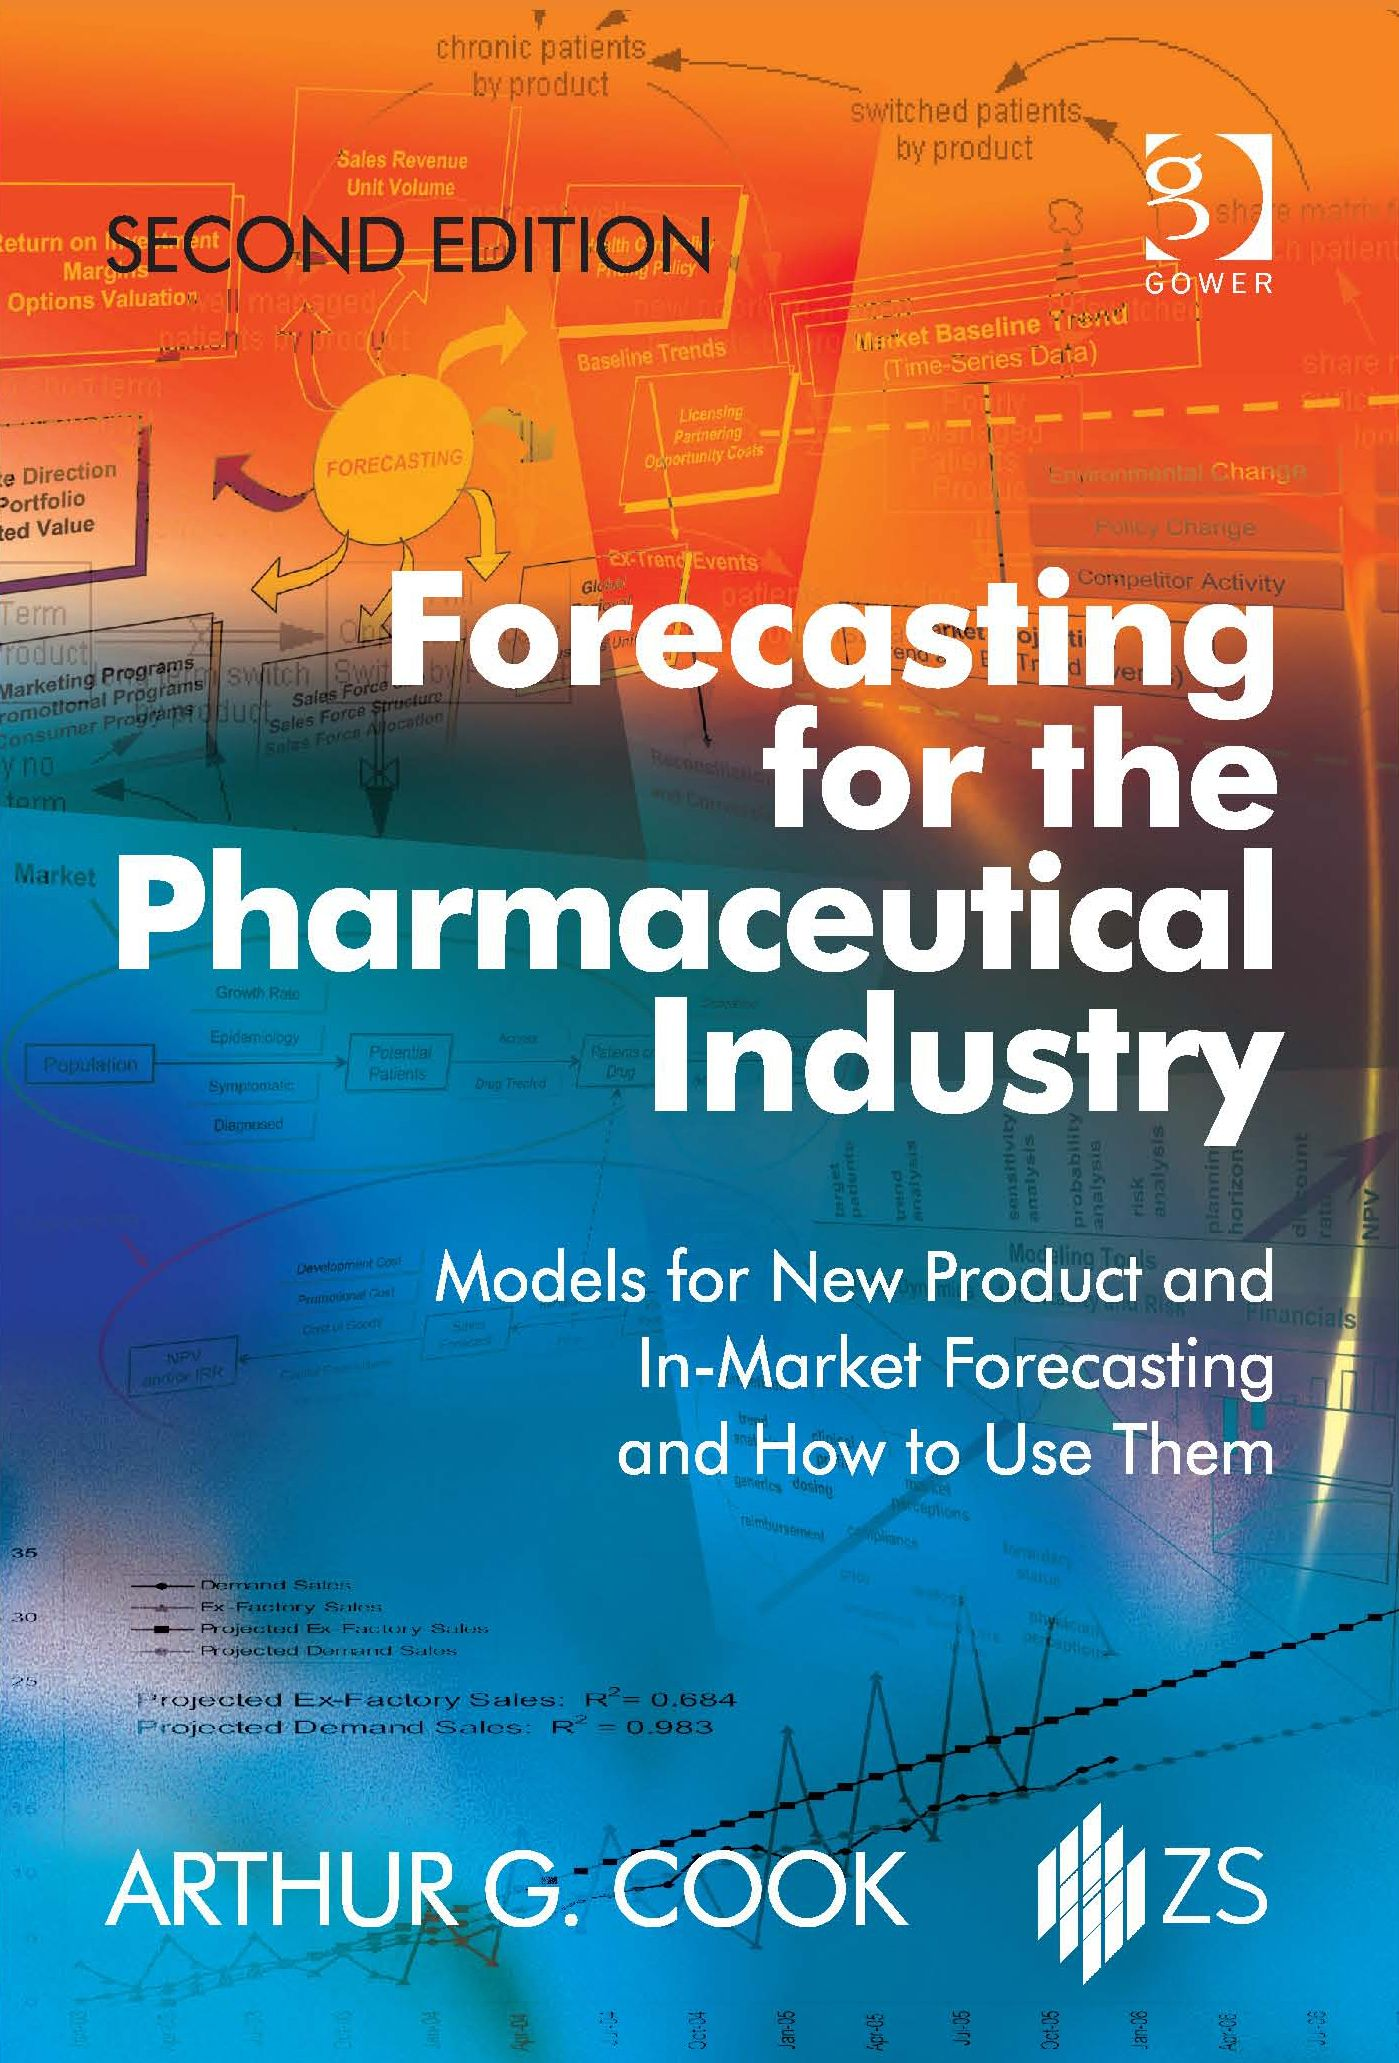 In this second edition, Arthur G. Cook explains the basis of a successful balanced forecast for products in development as well as currently marketed products. He explores the pharmaceutical forecasting process; the varied tools and methods for new product and in-market forecasting; how they can be used to communicate market dynamics to the various stakeholders; and the strengths and weaknesses of different forecast approaches.